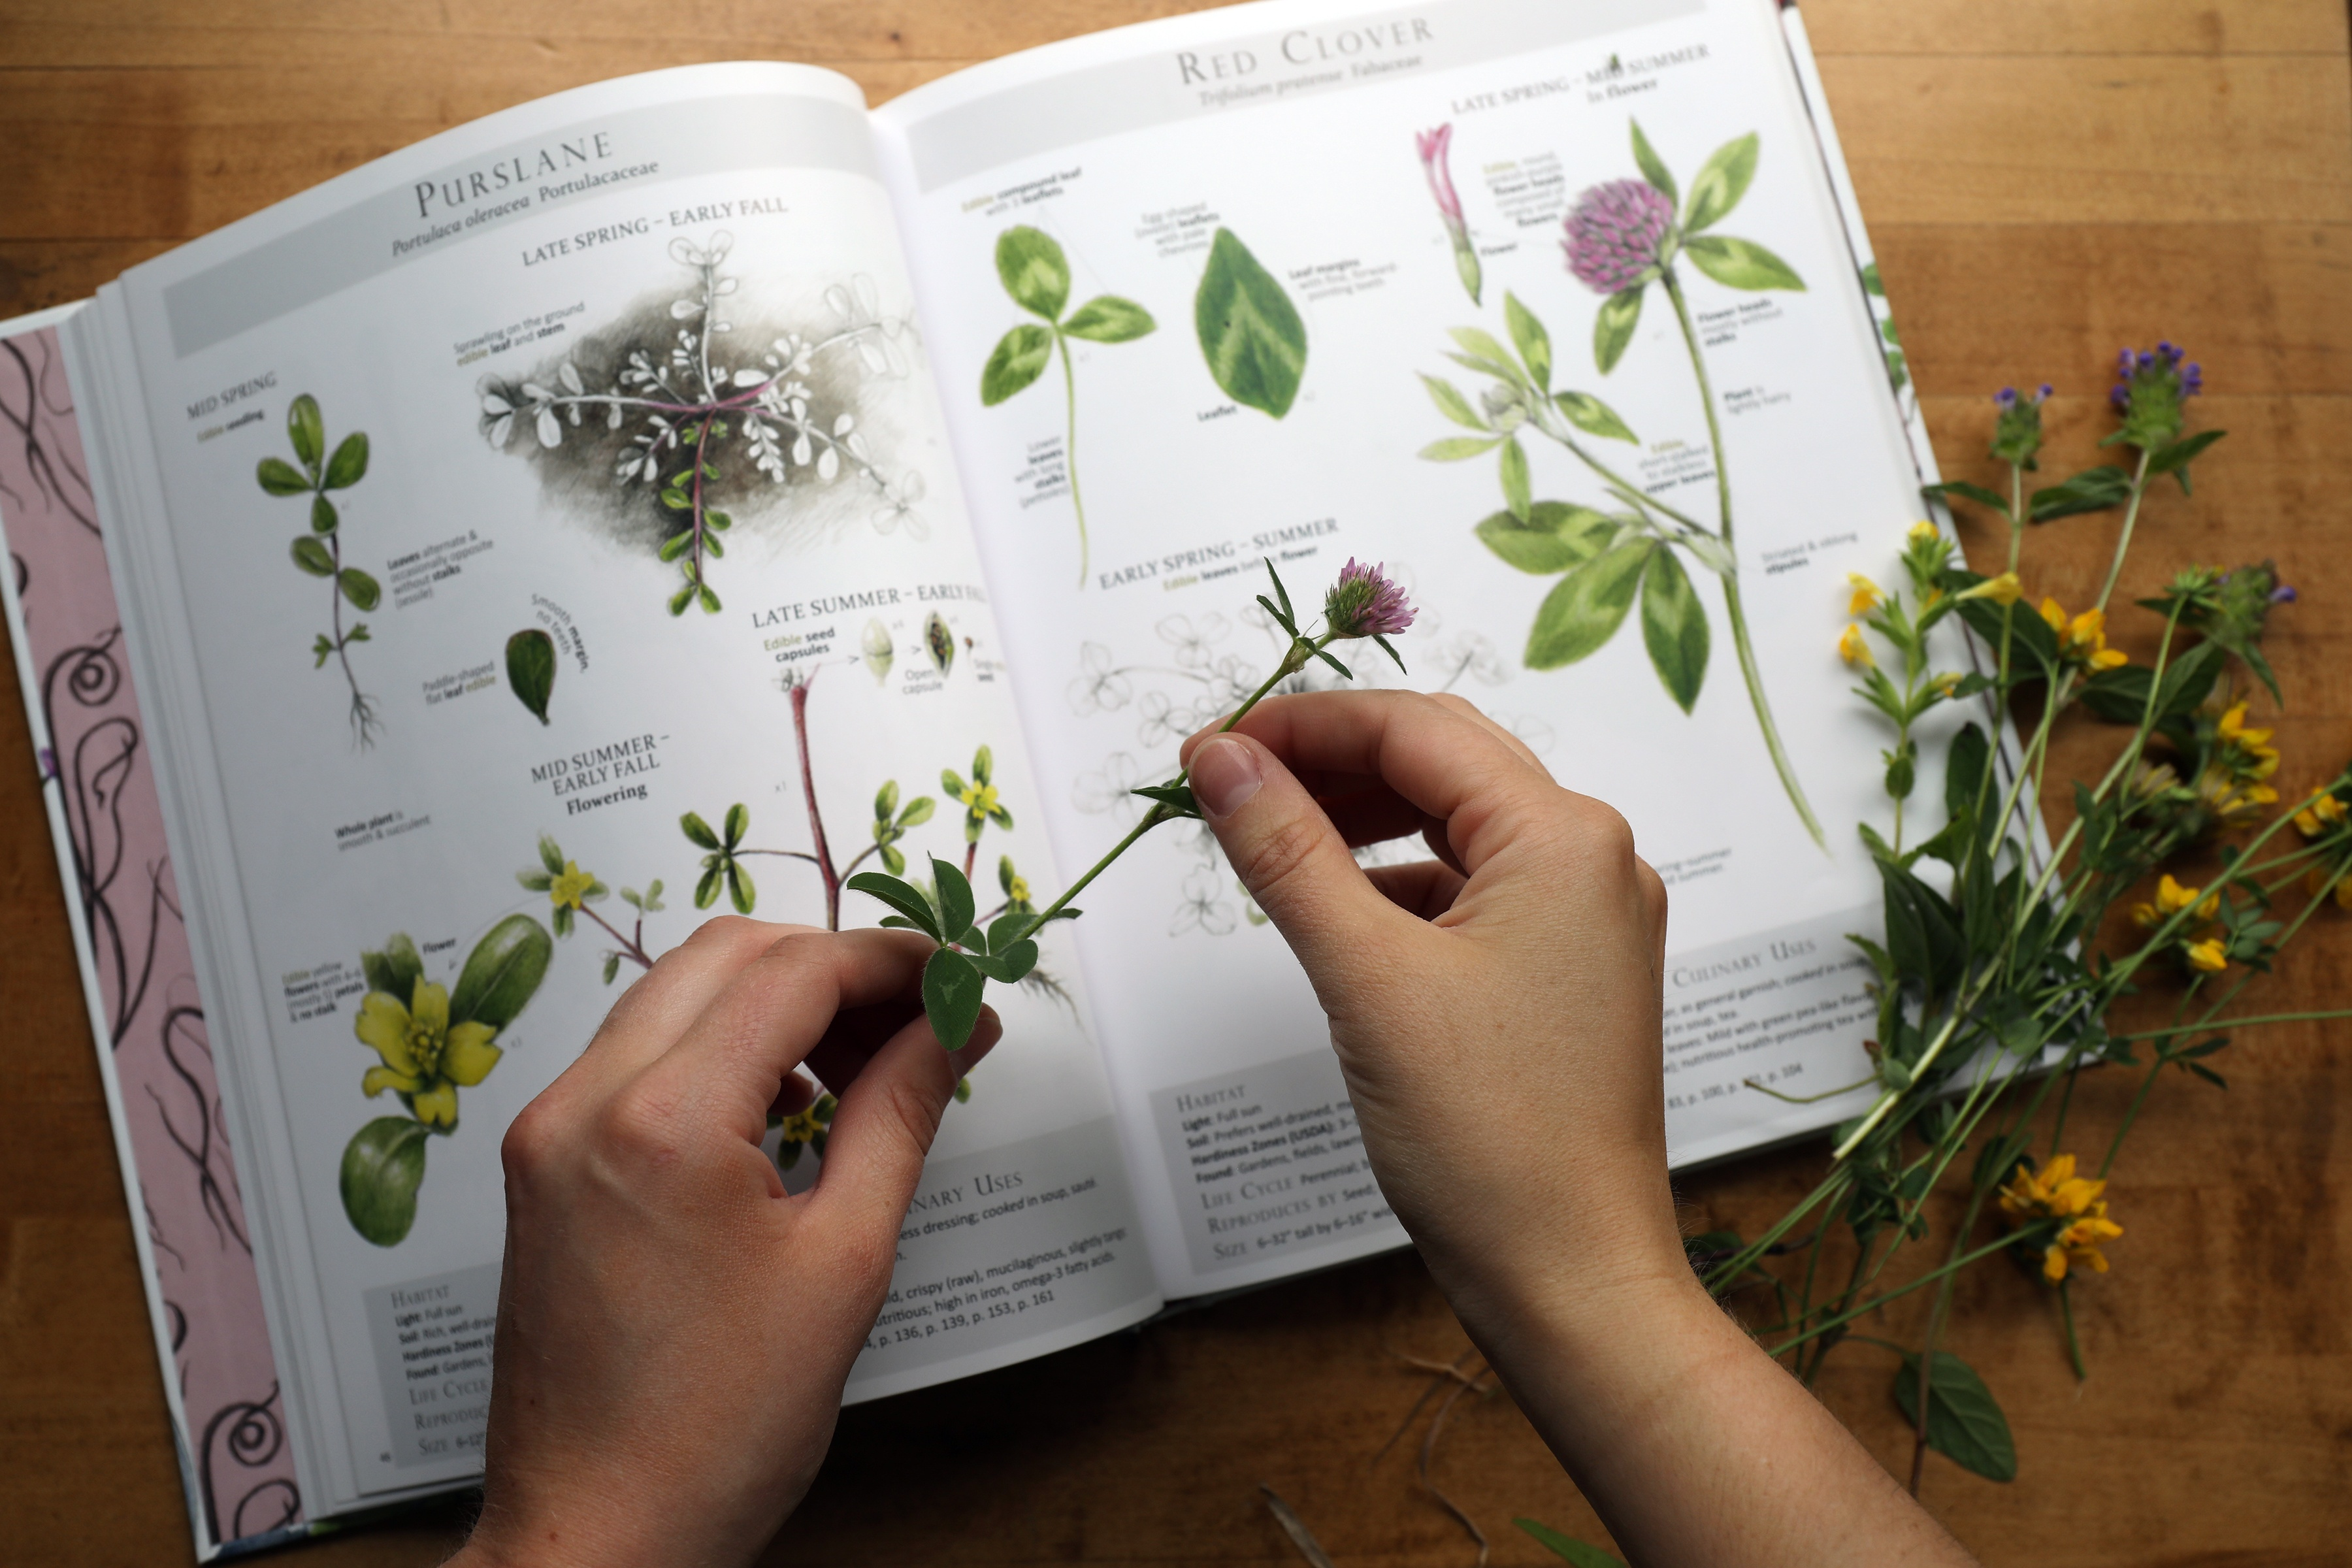 Hands holding plant trying to identify botanical near book